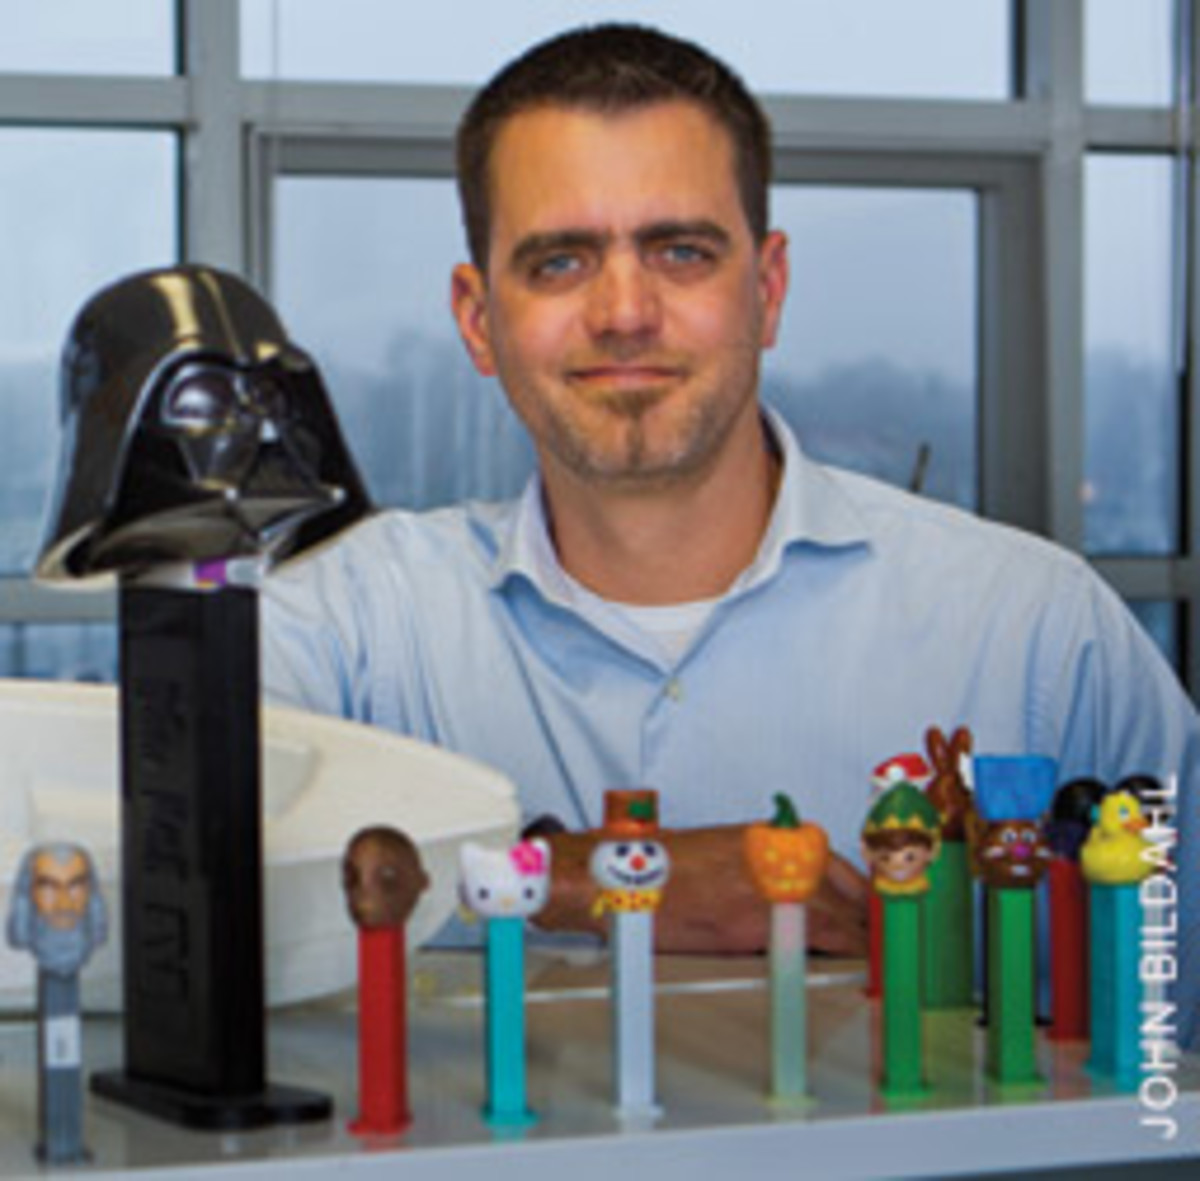 Farr Yacht Design president Pat Shaughnessy and his platoon of Pez dispensers, each of which represents a project that's in the works.